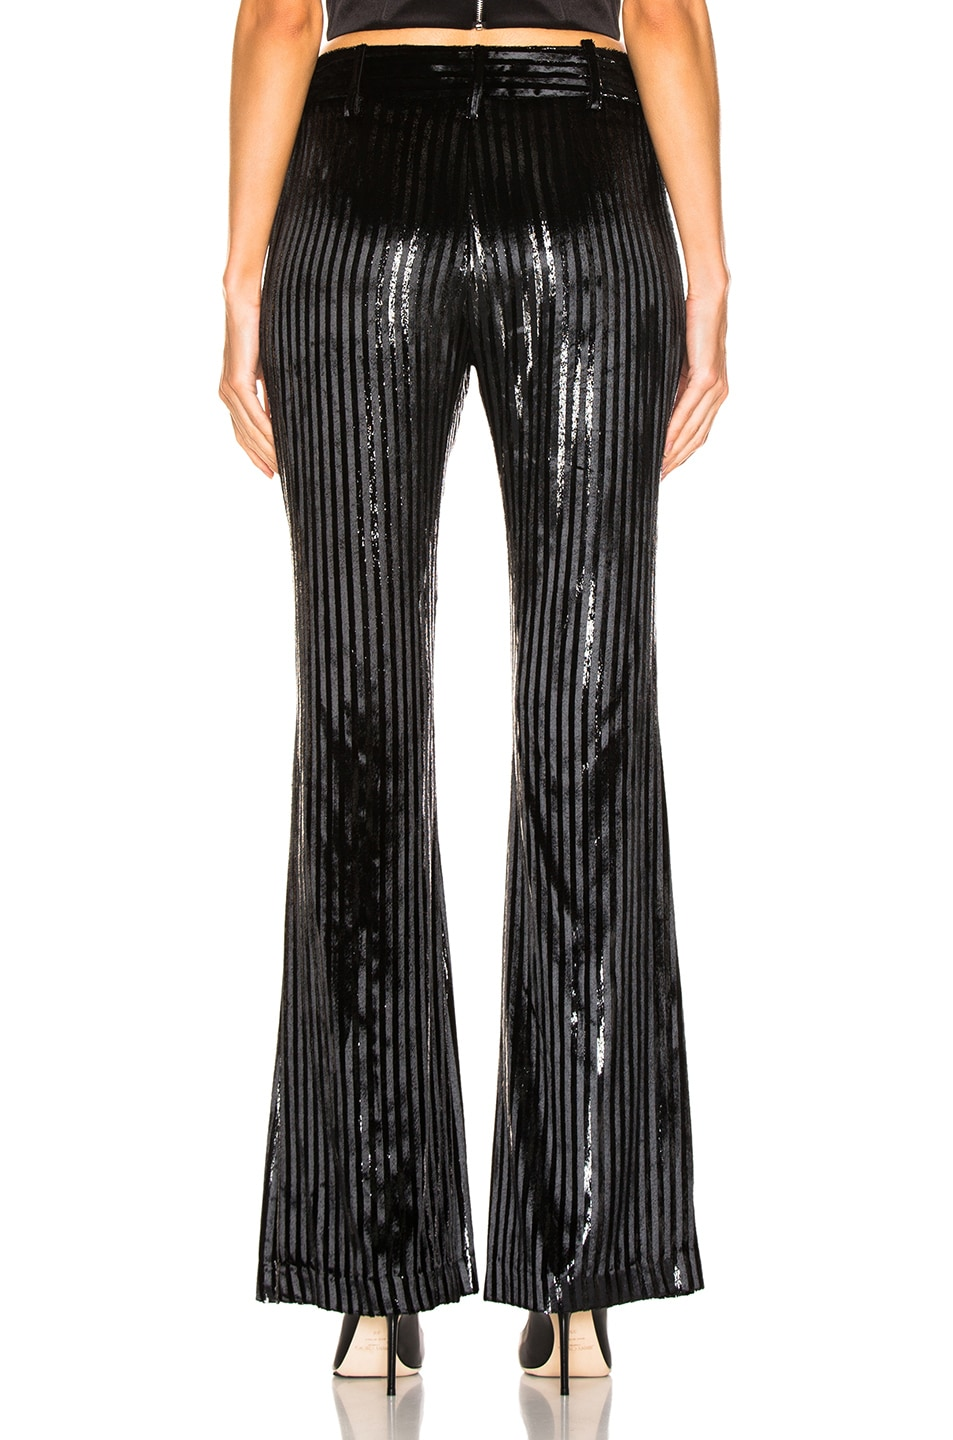 Image 3 of Smythe Velvet Bootcut Pant in Black Lame Stripe